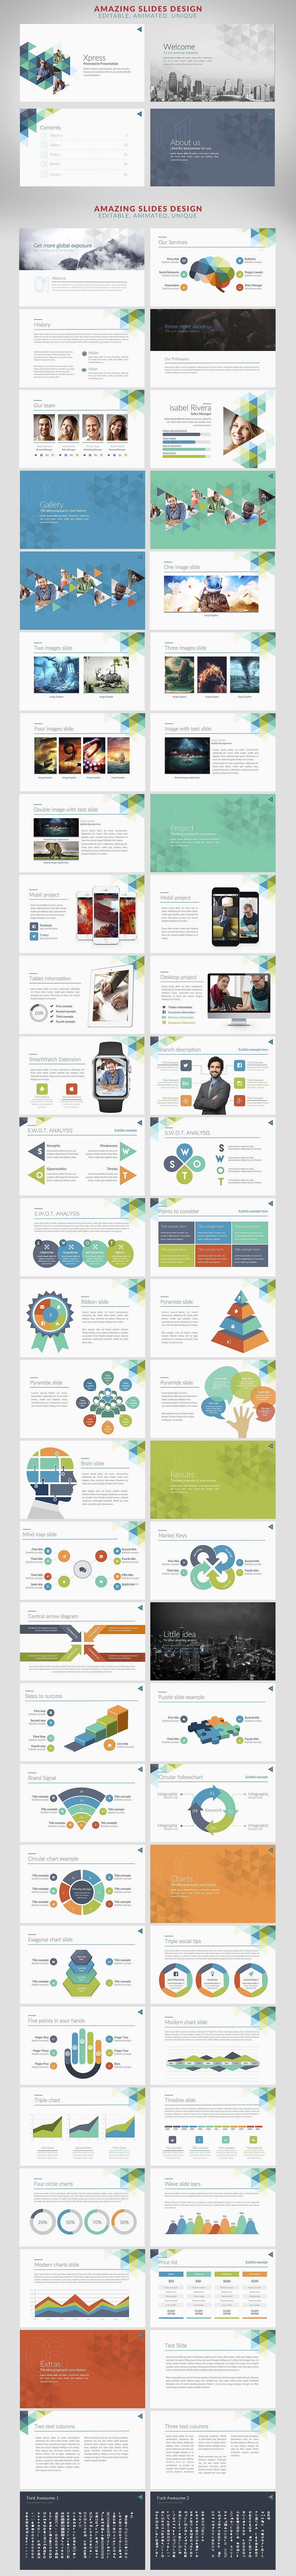 20 Powerpoint Templates with 81% OFF - Xpress 02